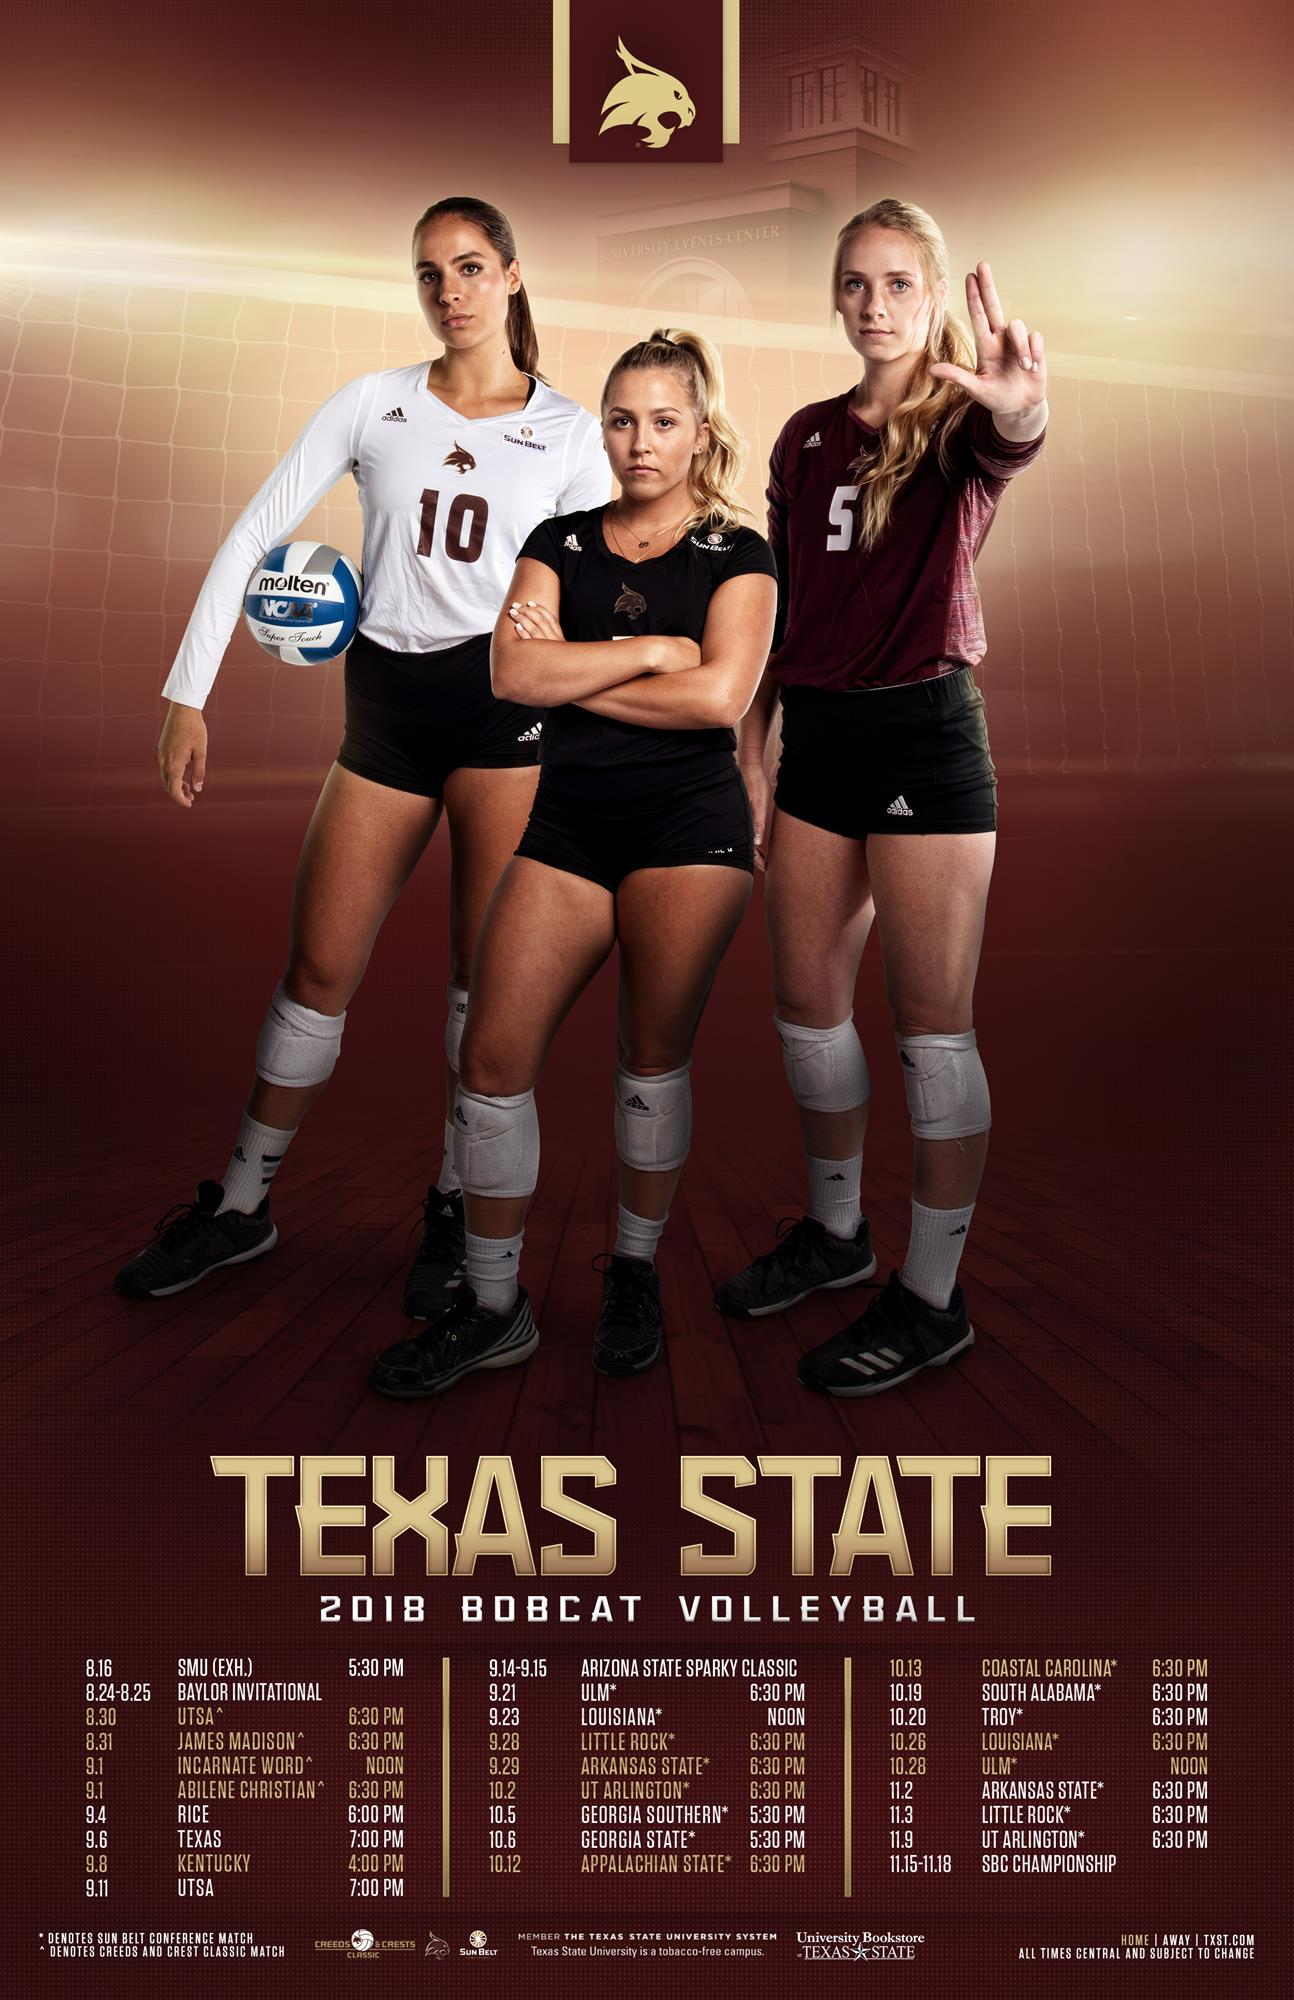 Download Promo Schedules - Texas State